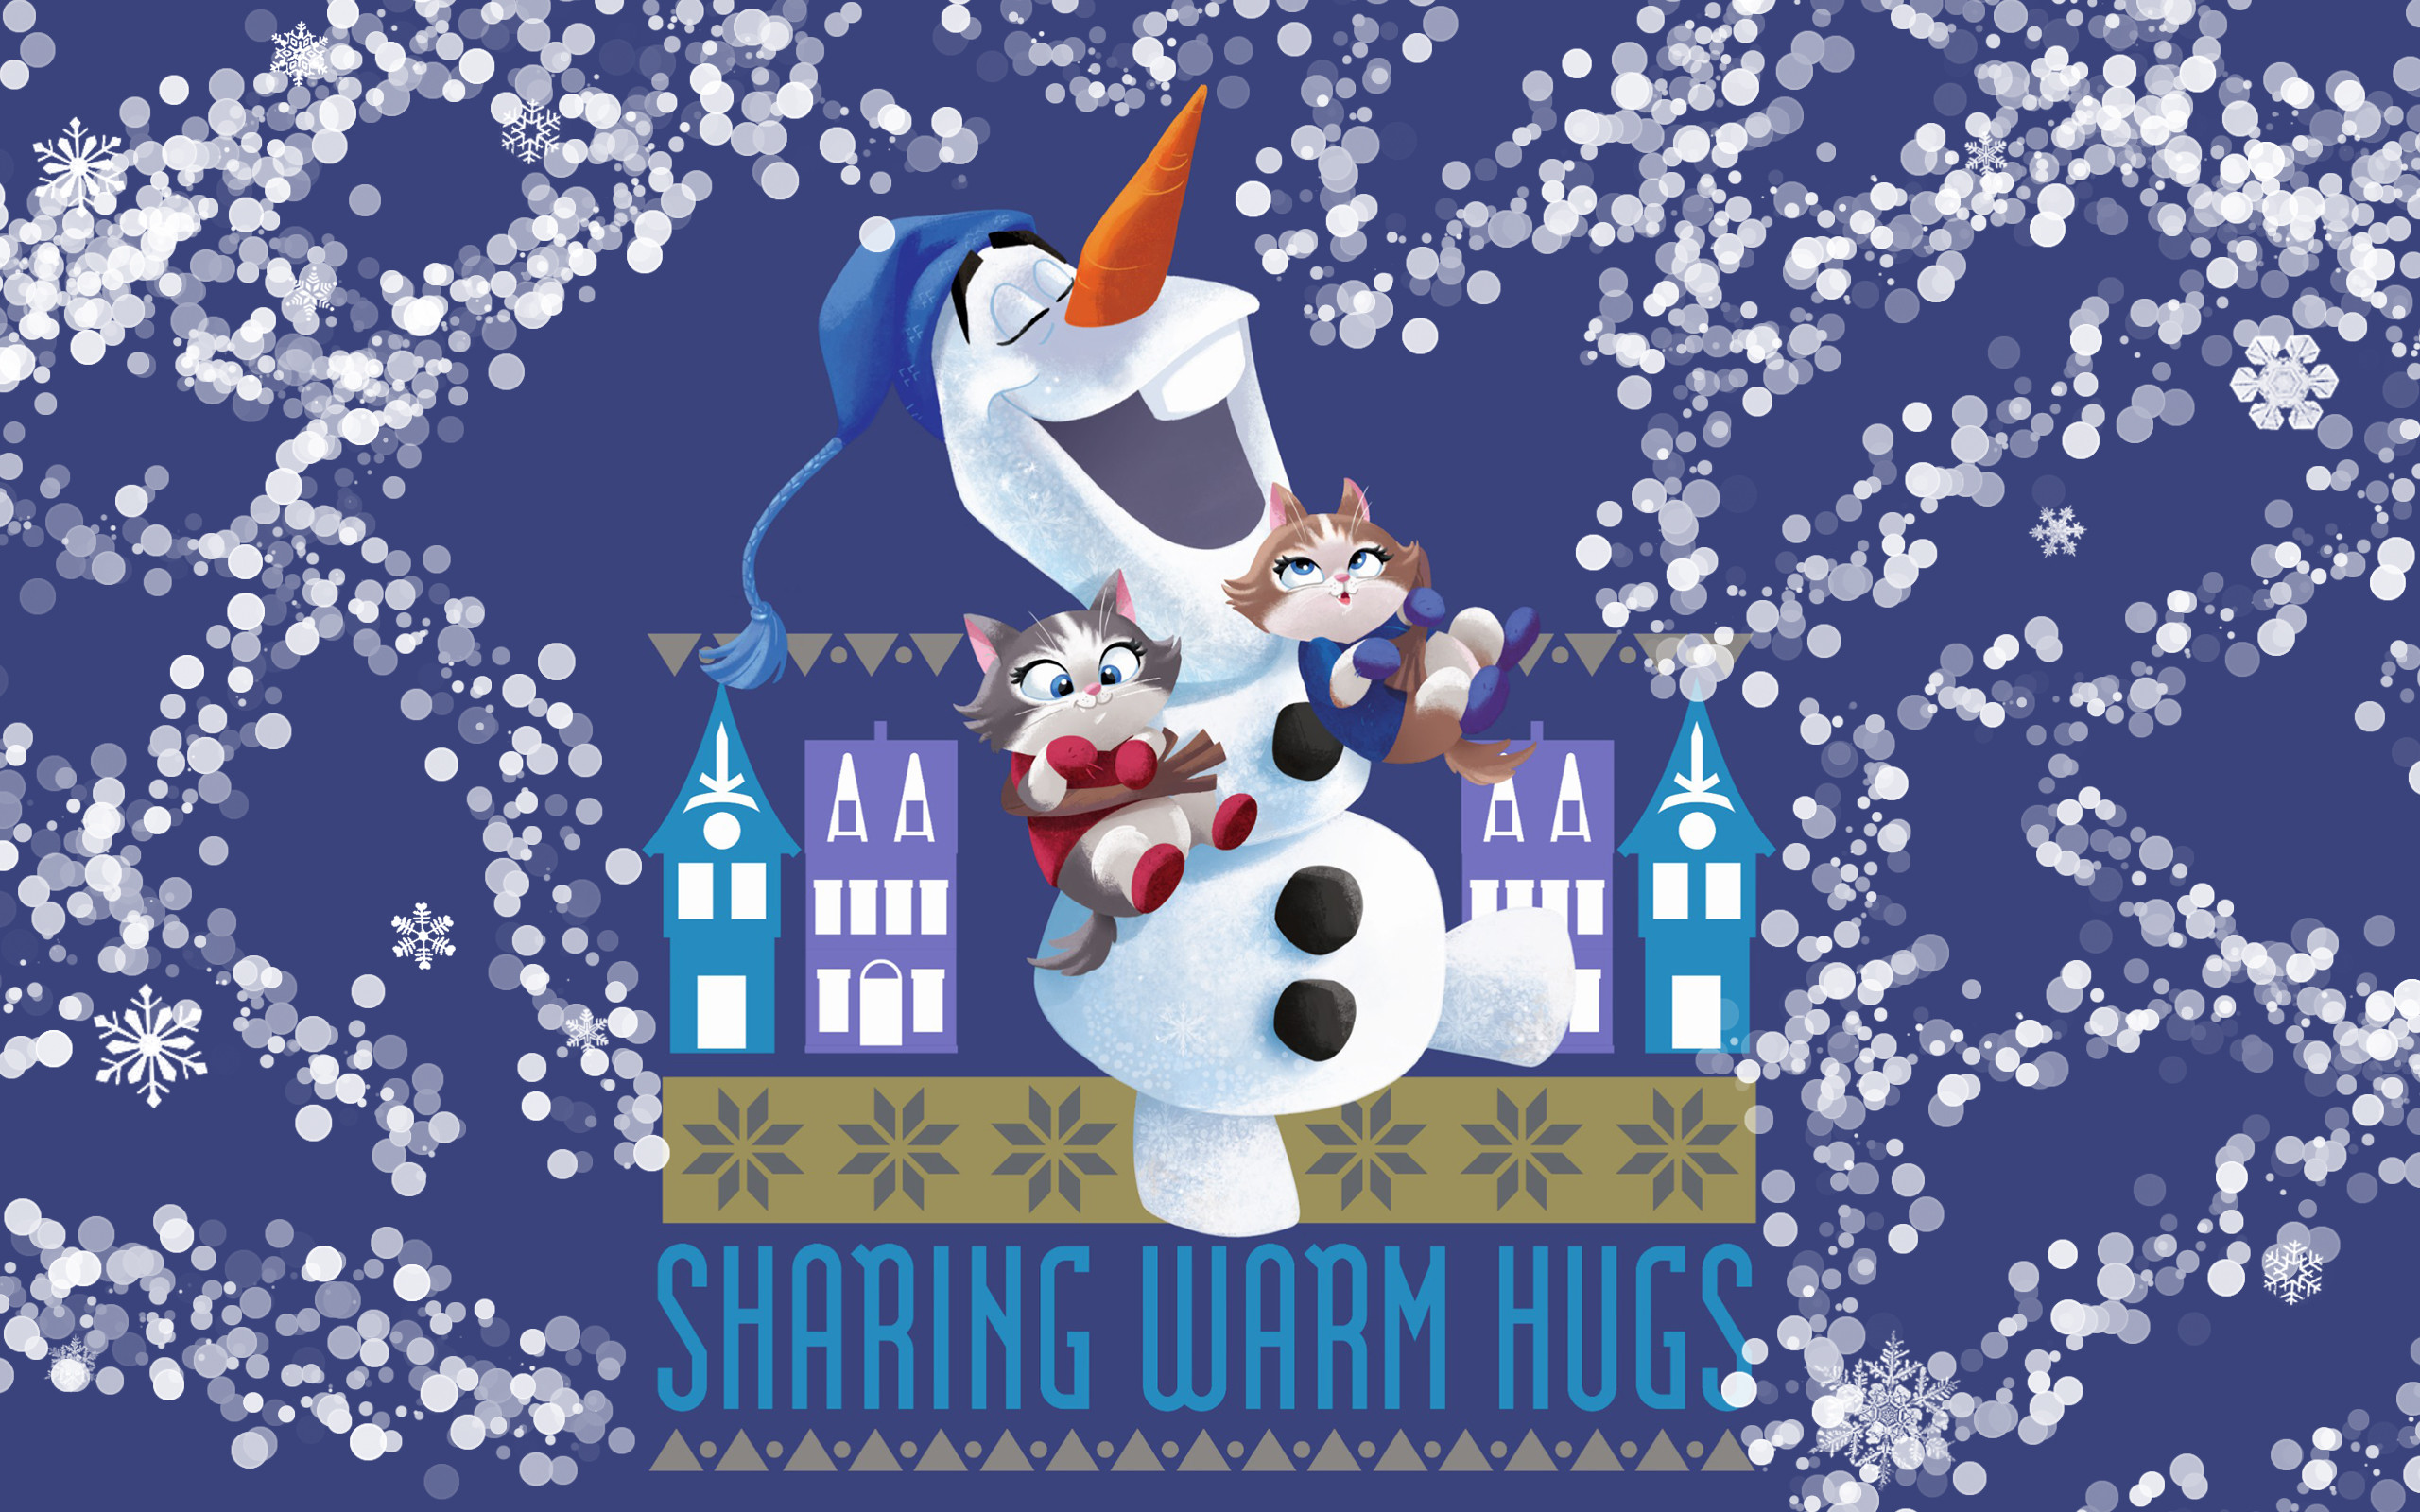 Res: 2560x1600, Olaf with kittens in socks wallpaper - Olaf's Frozen Adventure